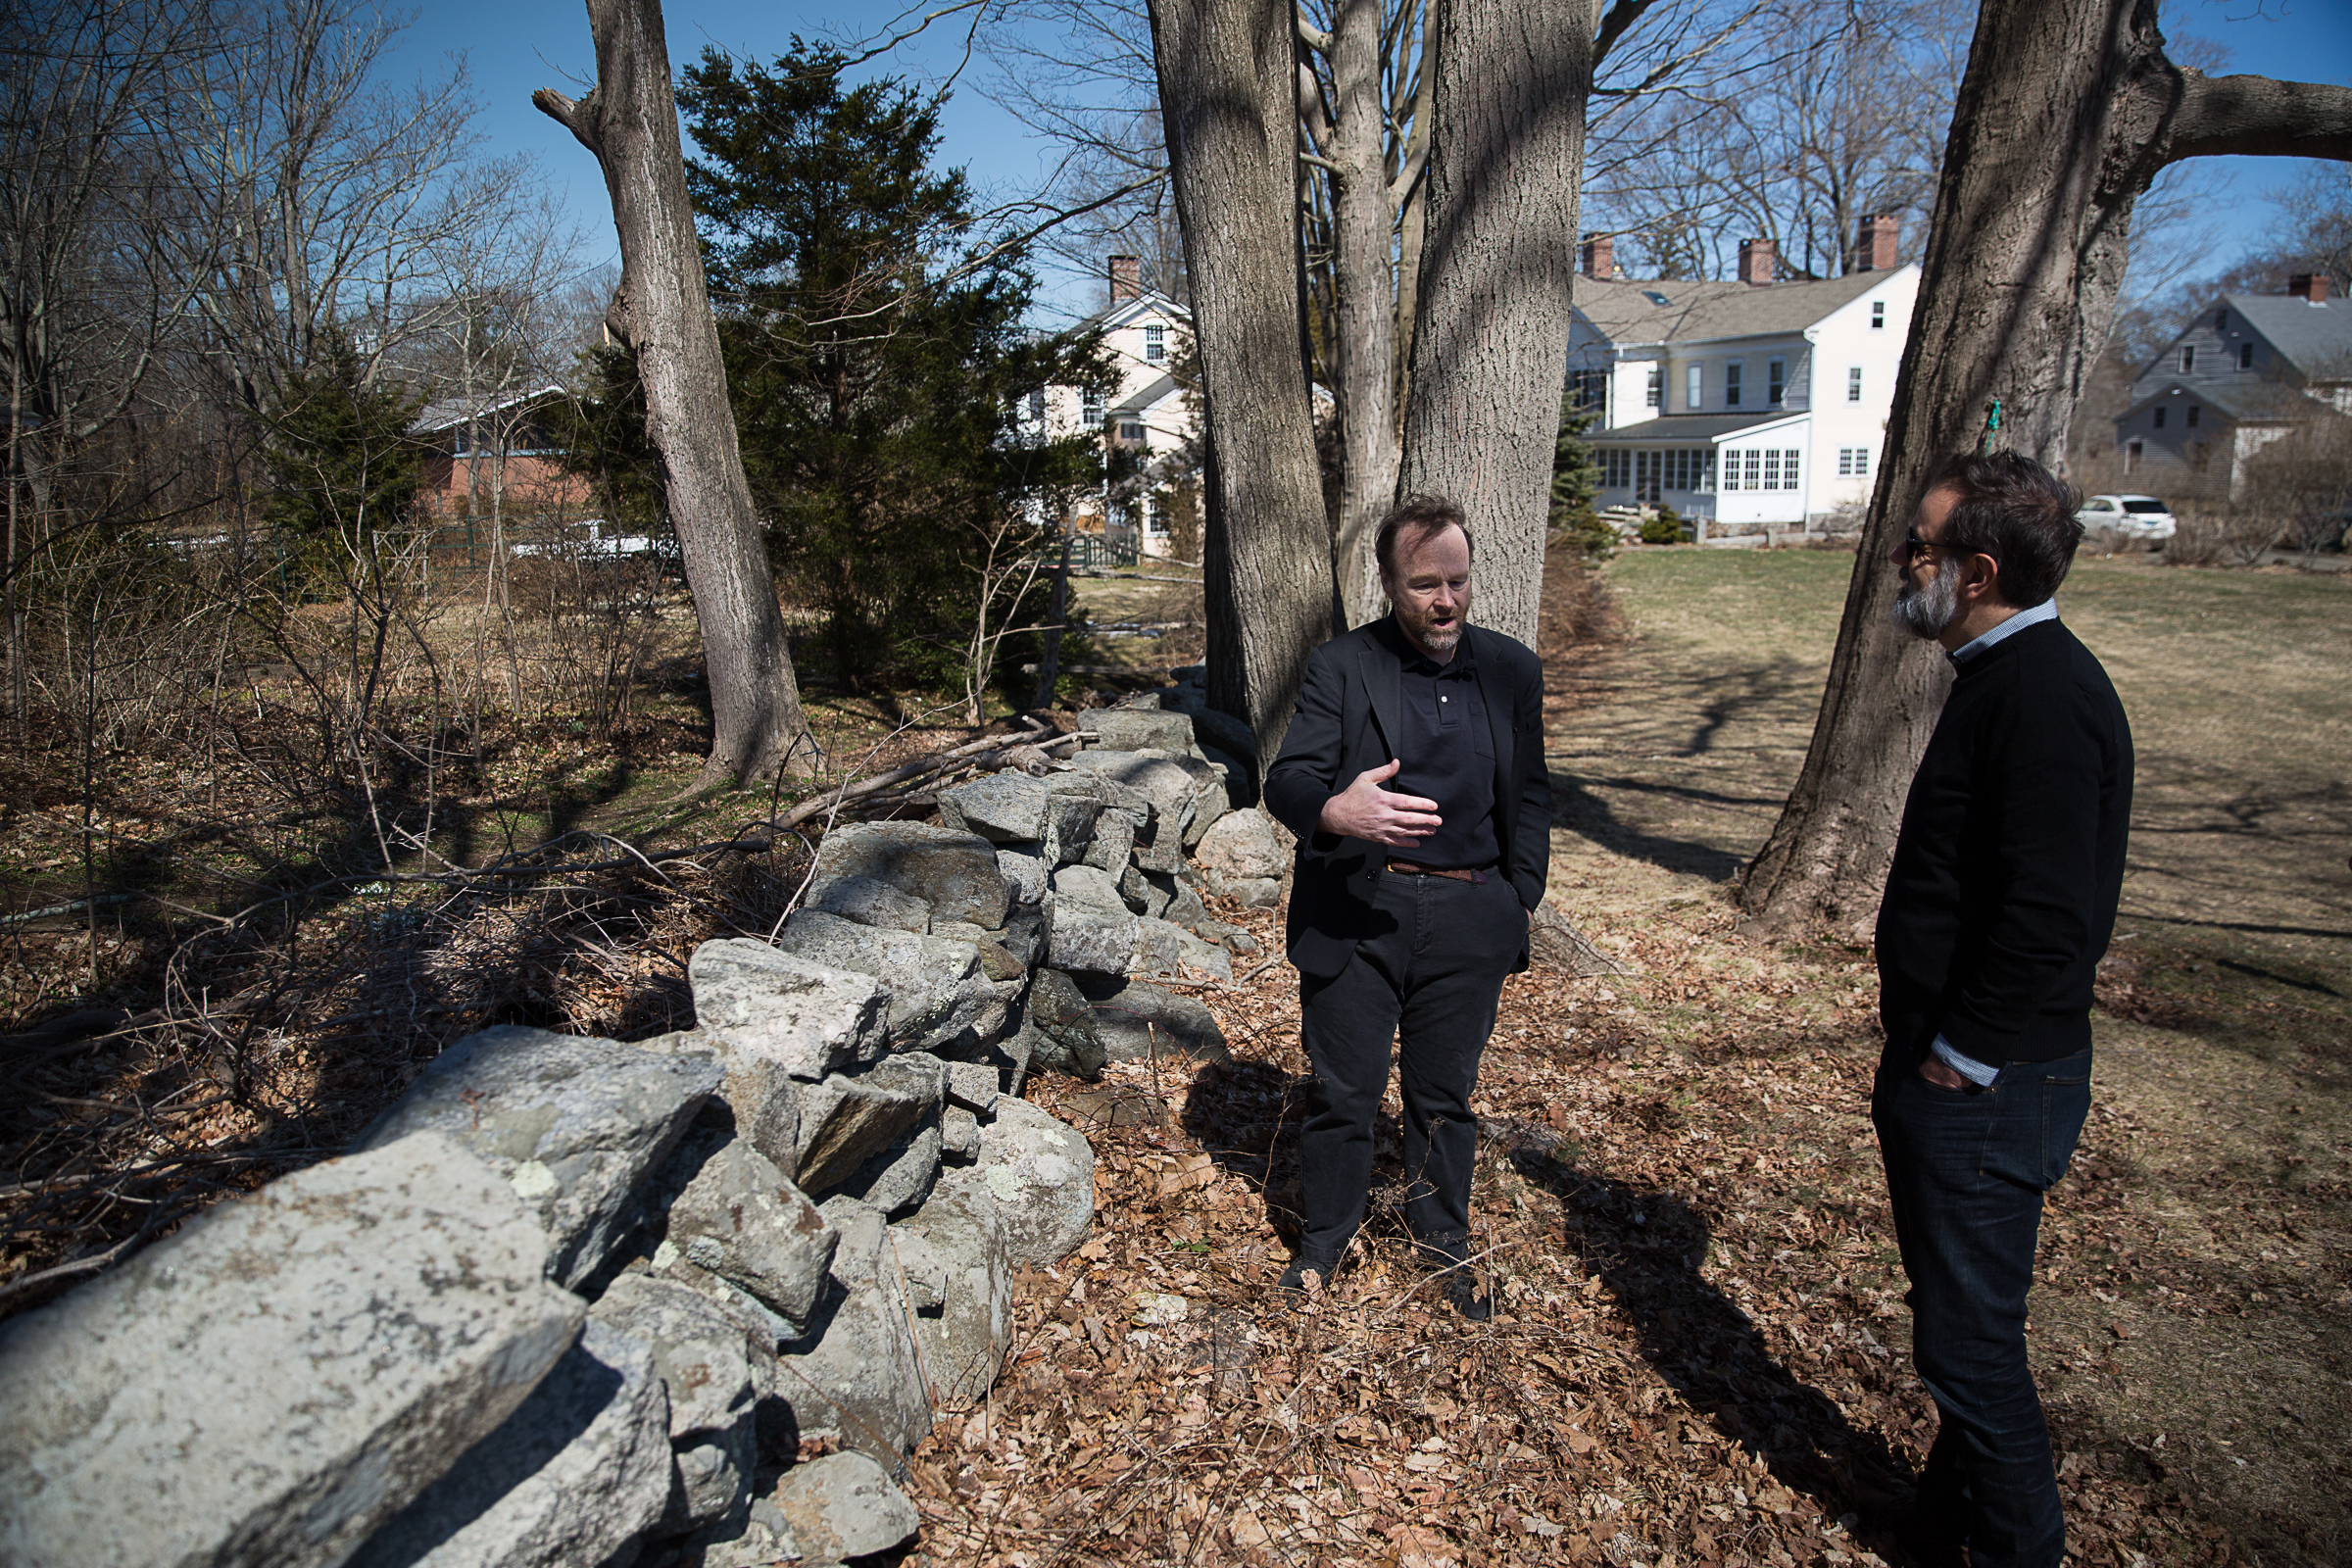 Architect Duo Dickinson ruminates on one of the staples of New England architecture: the stone wall. Photo by Ryan Caron King for WNPR